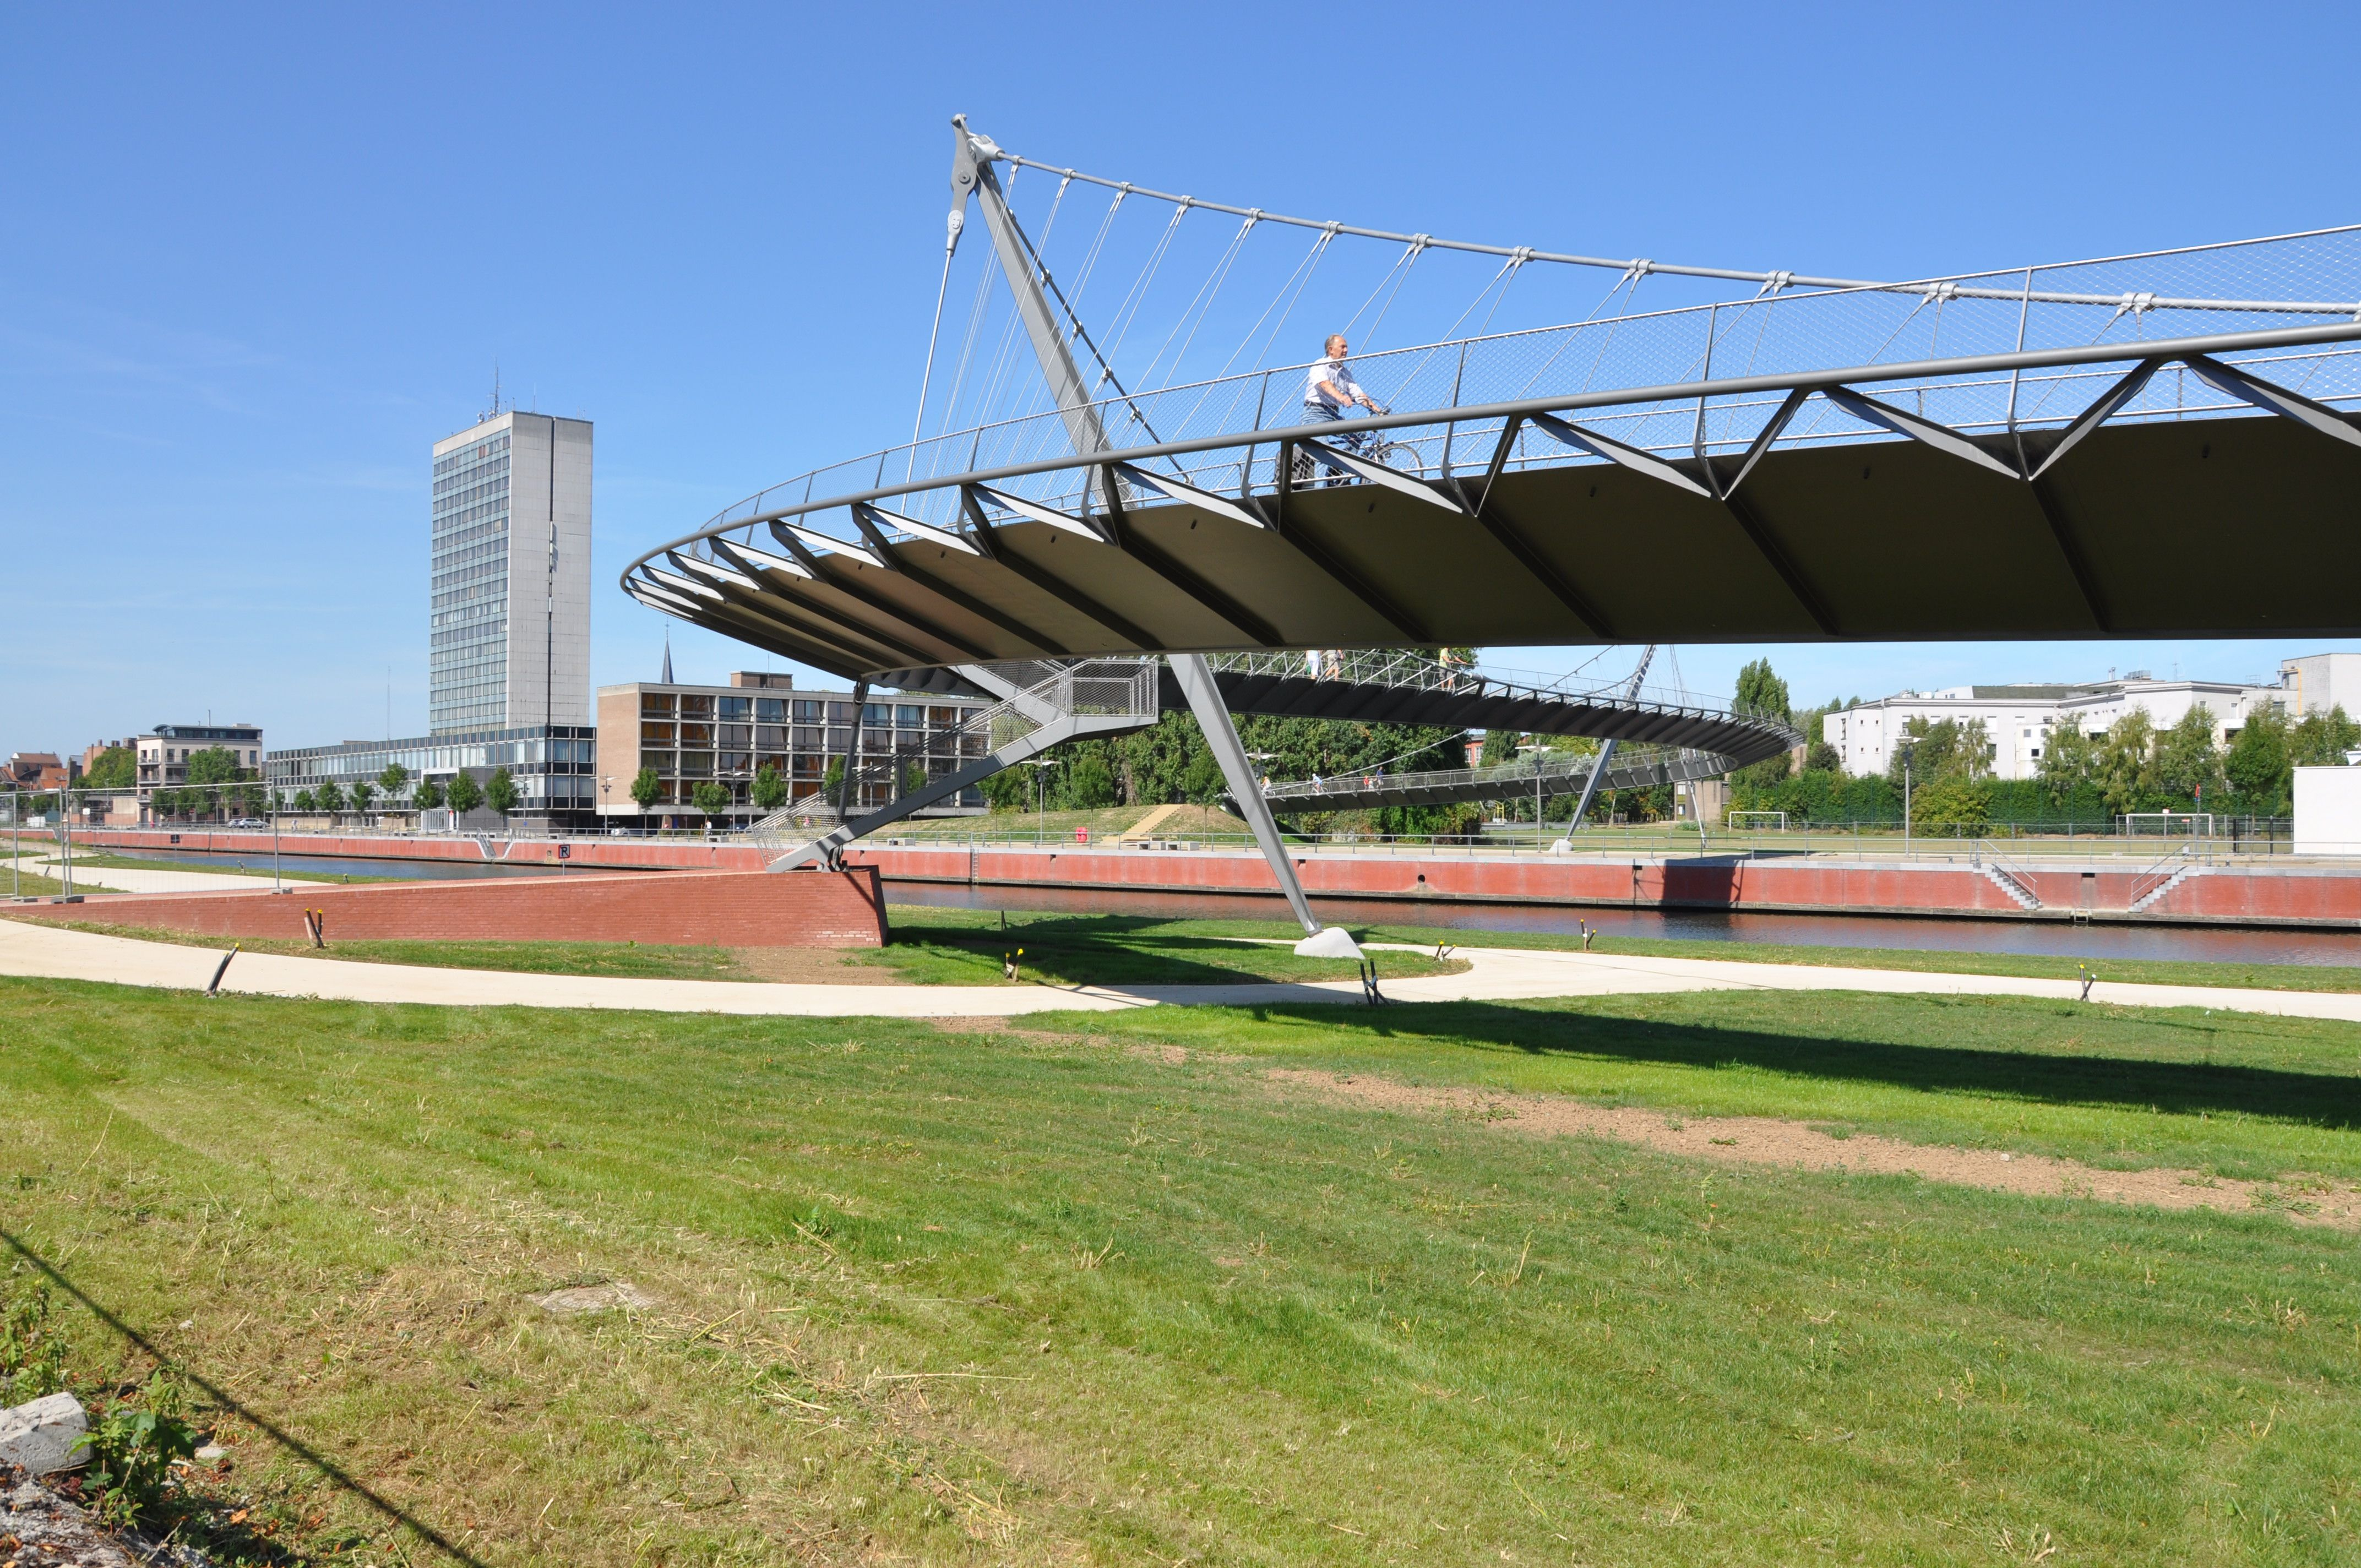 7 bridges overspan the leie river in the heart of kortrijk. the